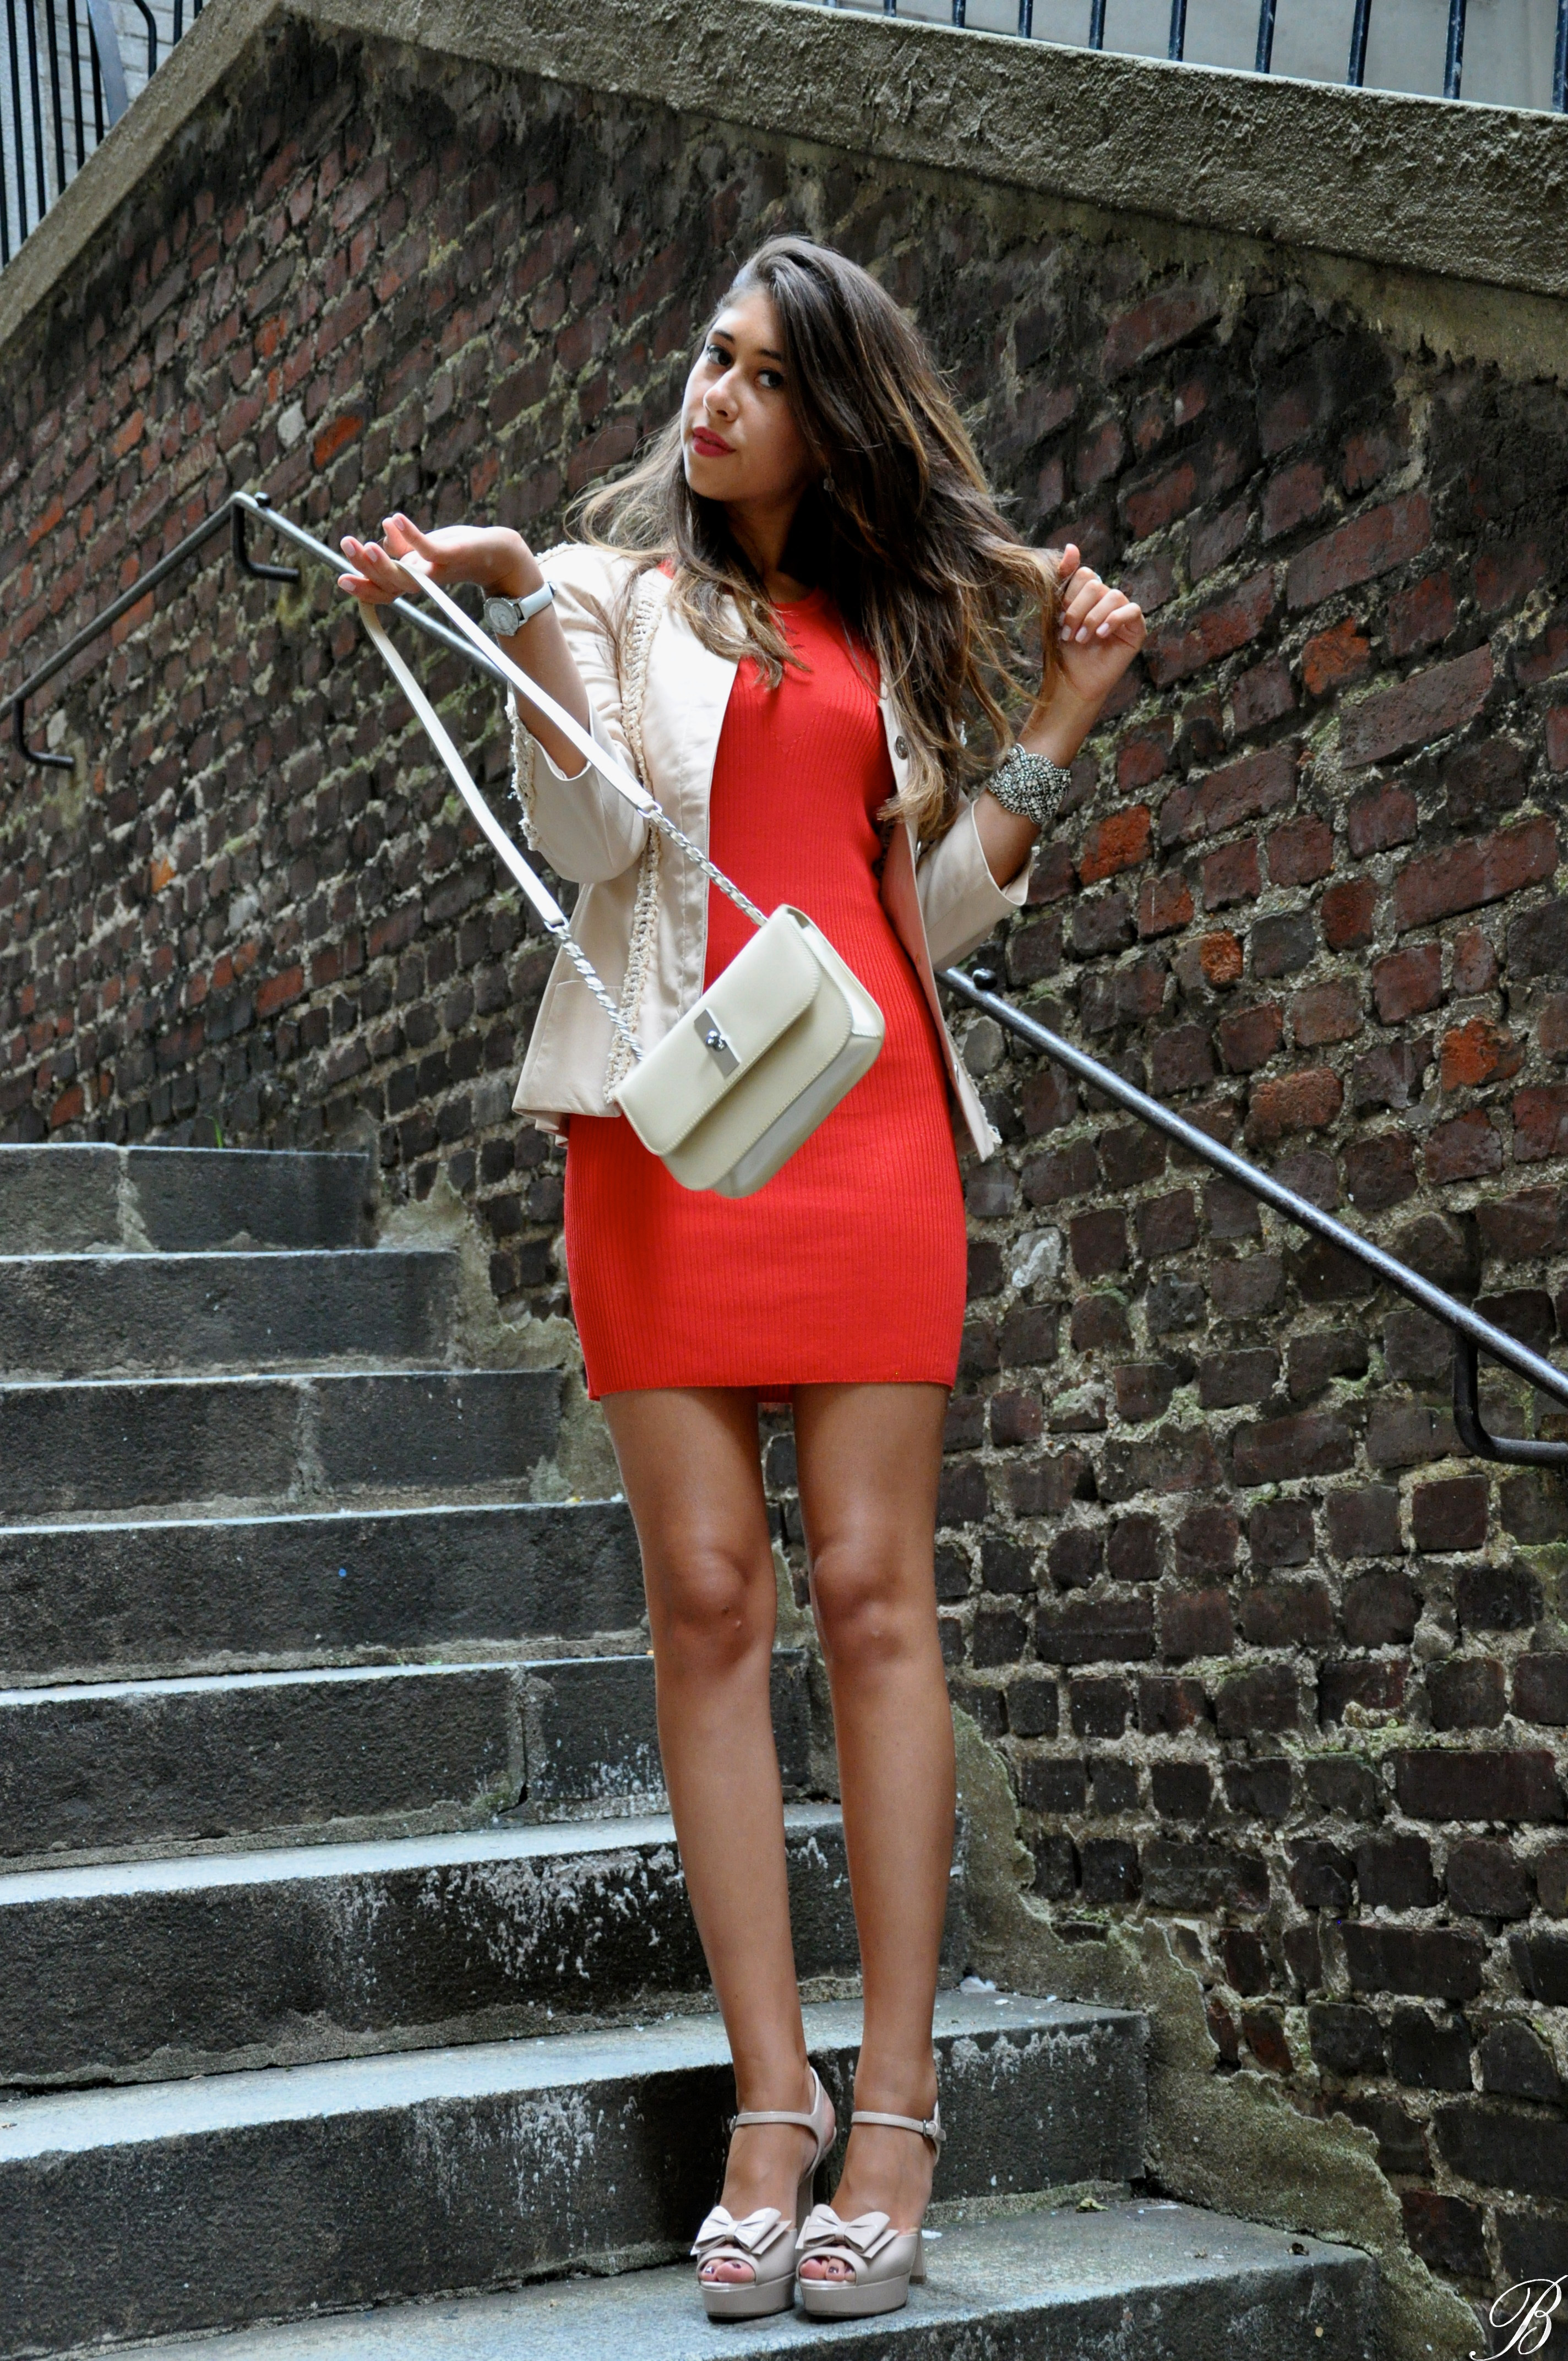 Women&-39-s Beige Leather Jacket- Red Bodycon Dress- Beige Leather ...